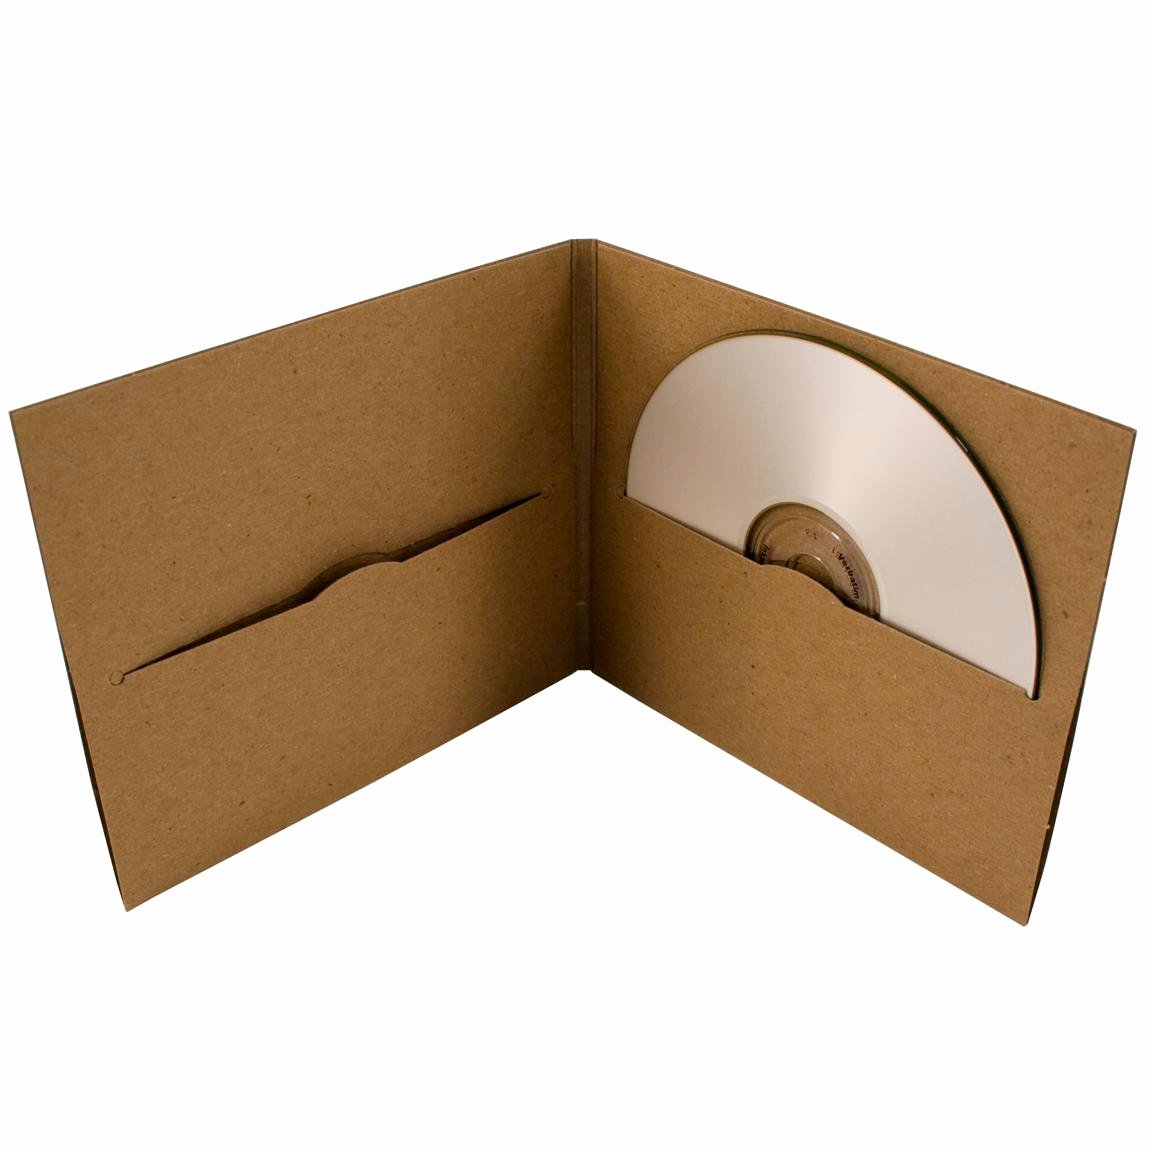 Diy Cd Sleeve Template New 8 Best Of Recycled Cardboard Cd Covers Cardboard